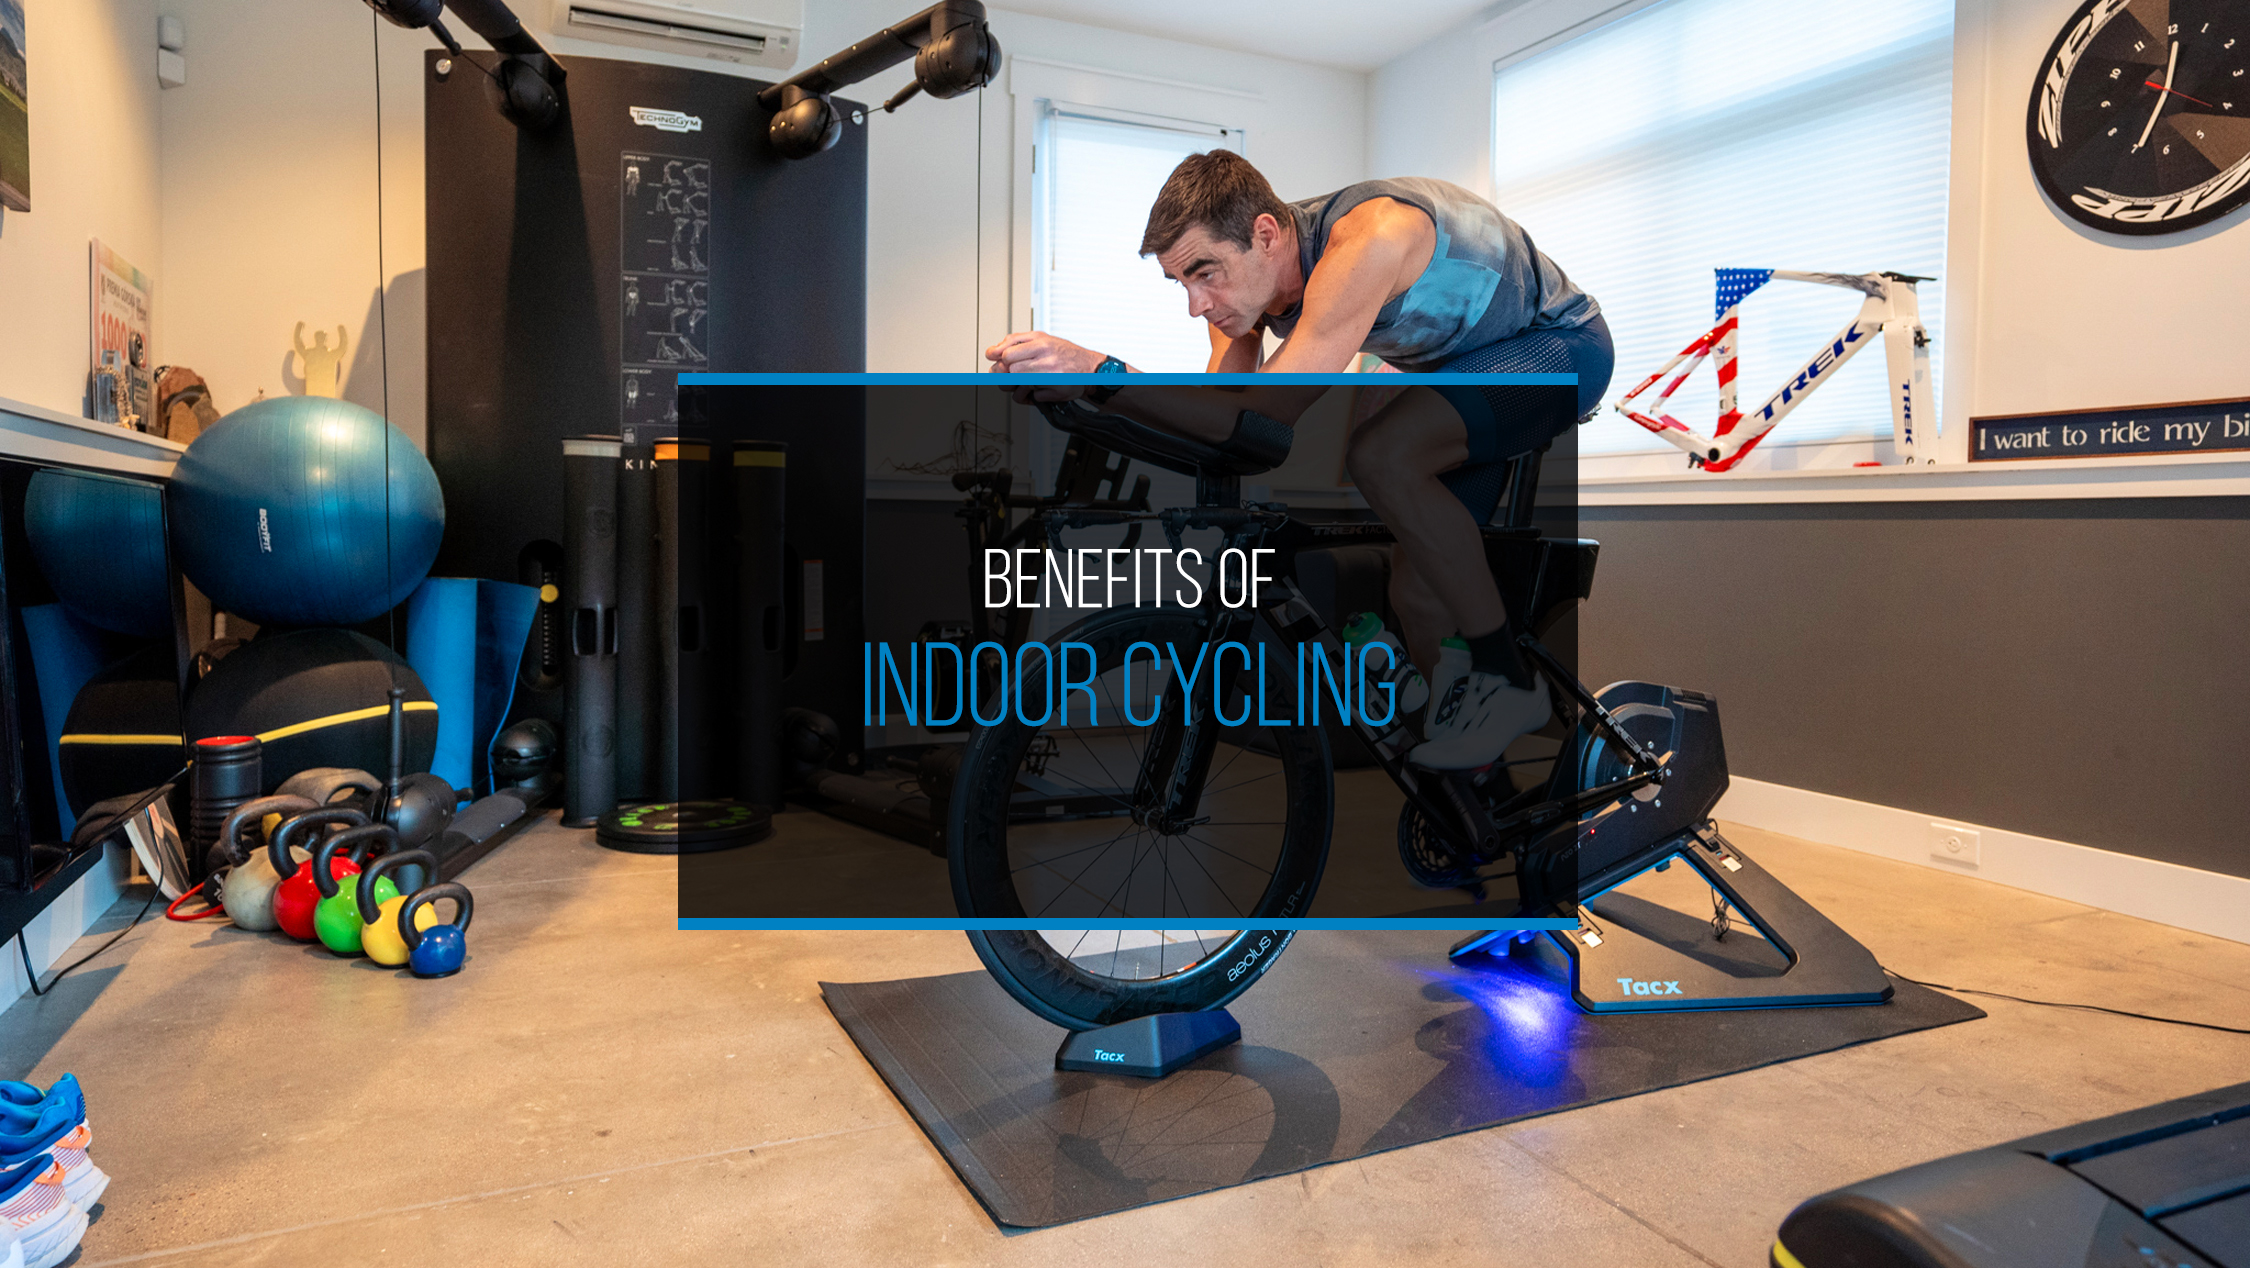 Benefits of Indoor Cycling - WP